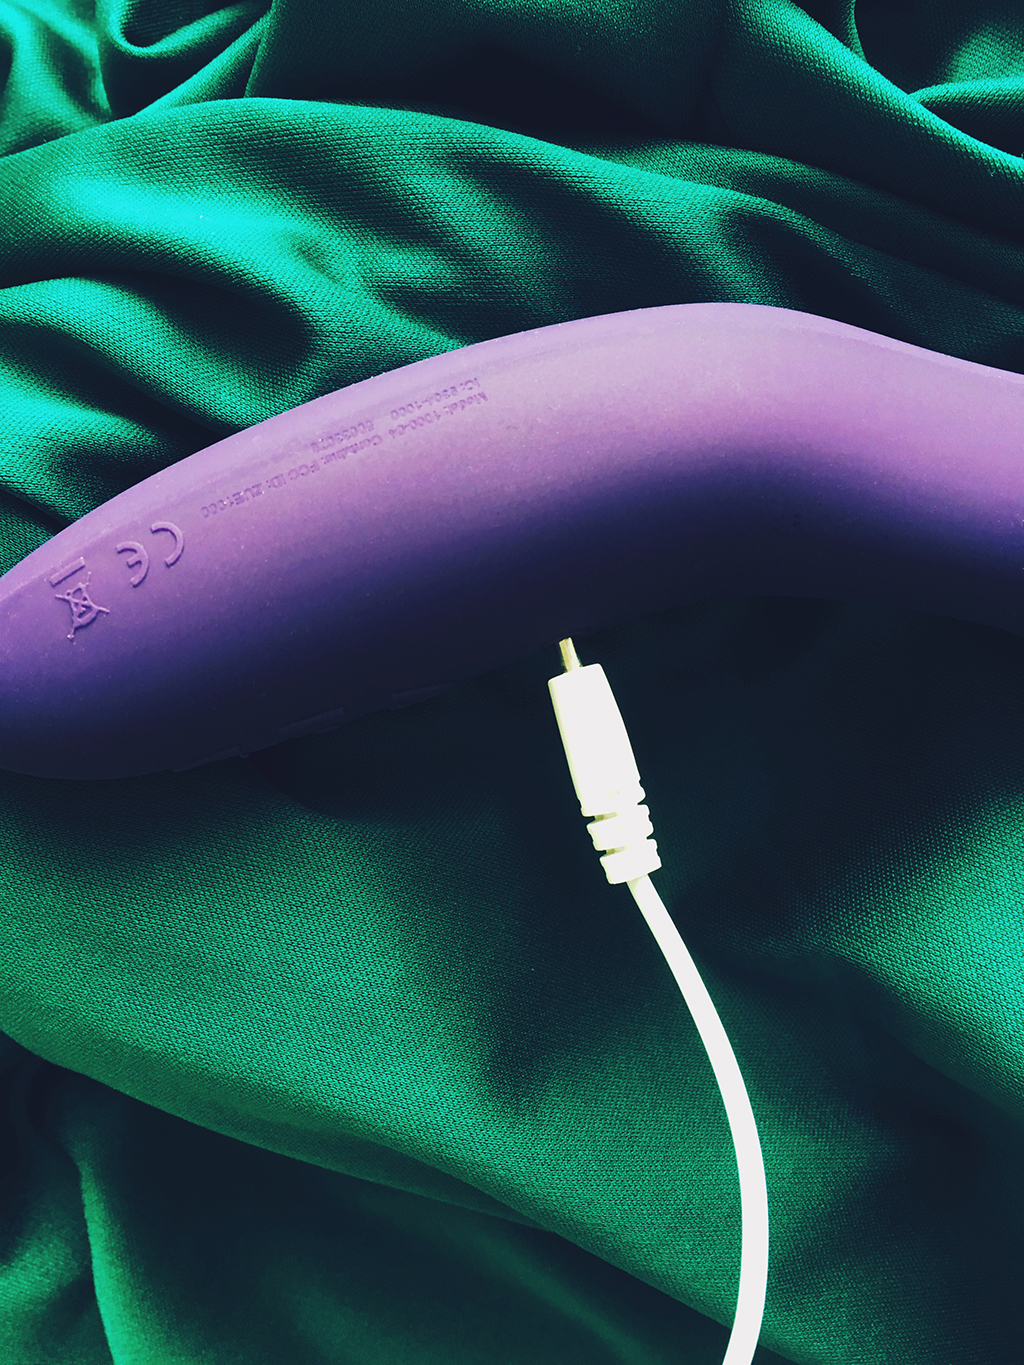 Photo of purple we-vibe rave vibrator showing charging cable being plugged in